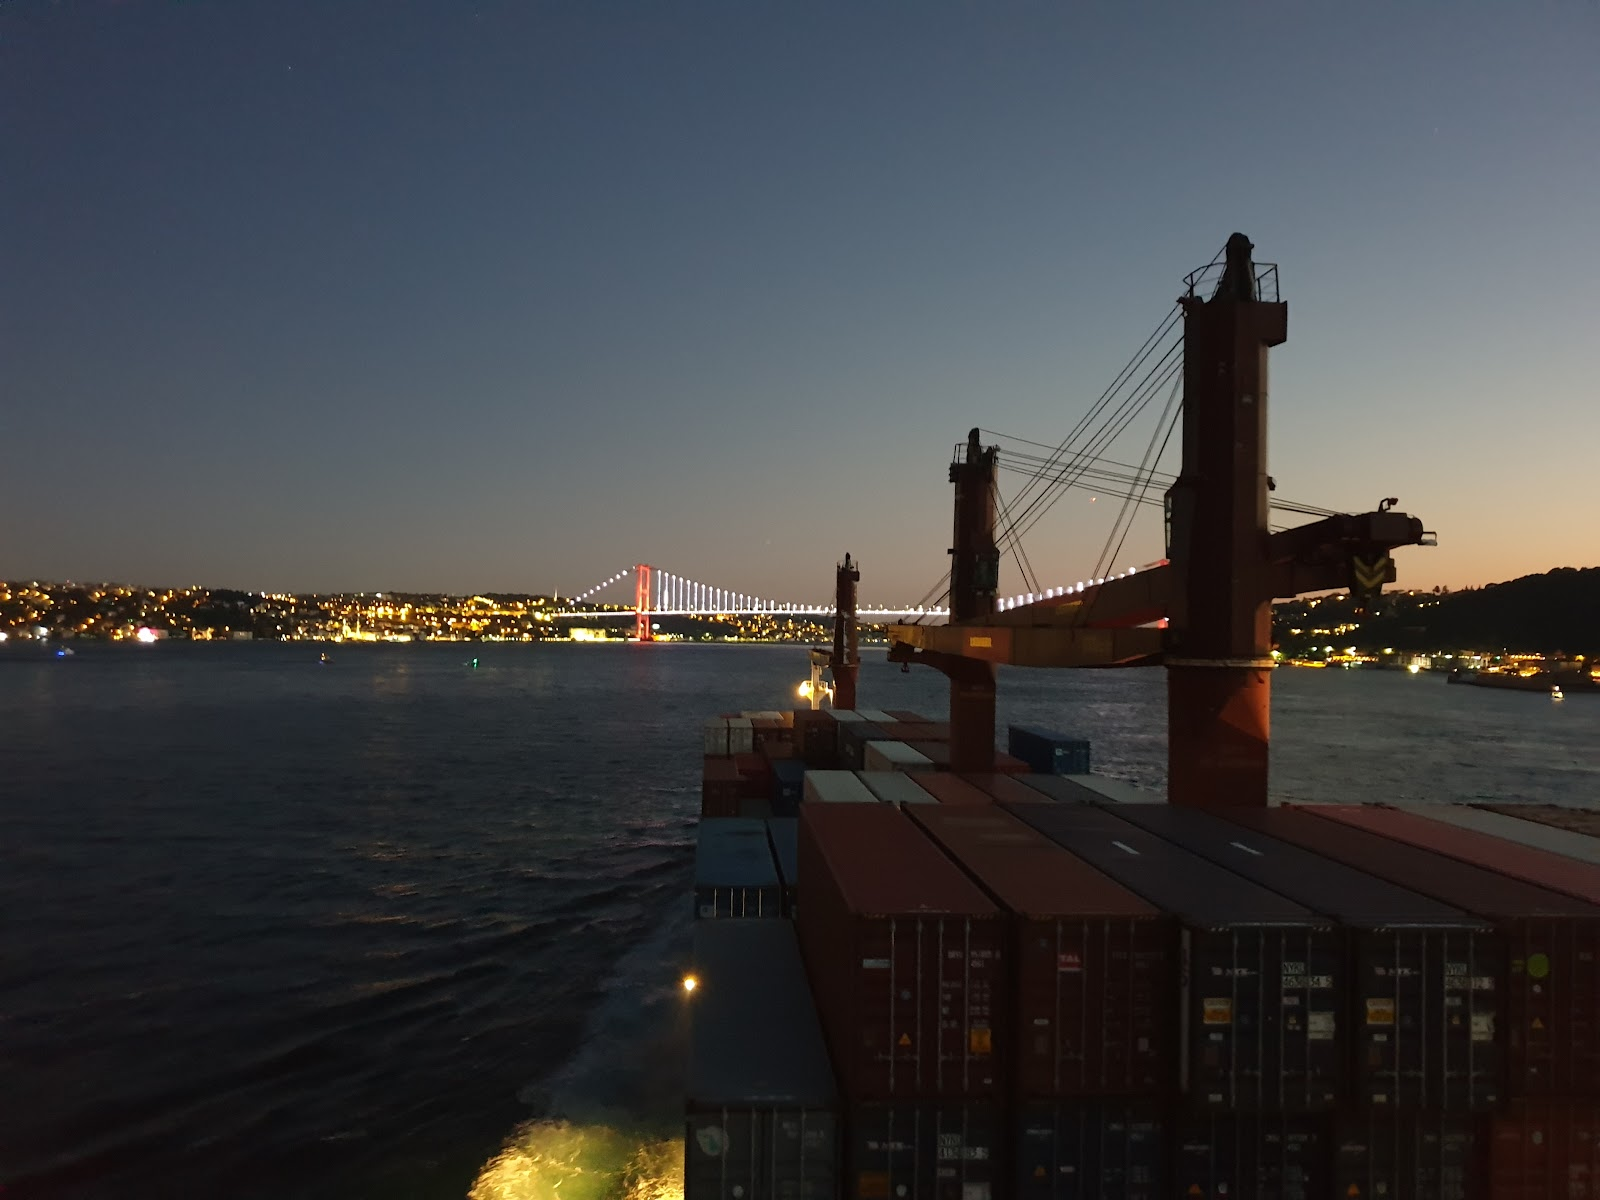 View from a container ship as it sails towards a bridge lit up by lights at night